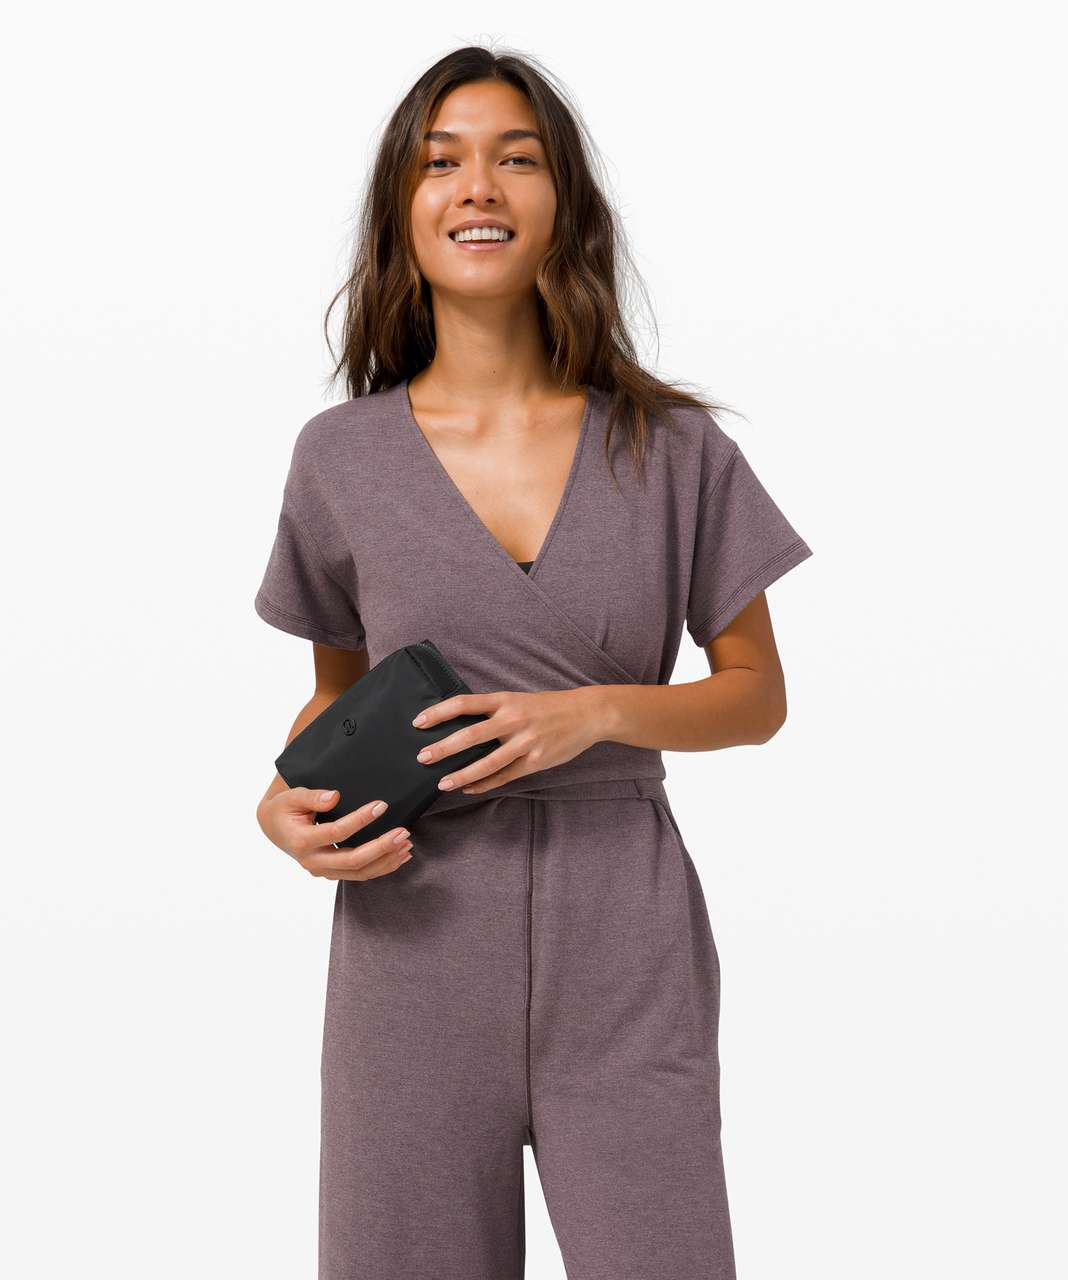 Lululemon All Your Small Things Pouch *Mini 2L - Black (First Release)